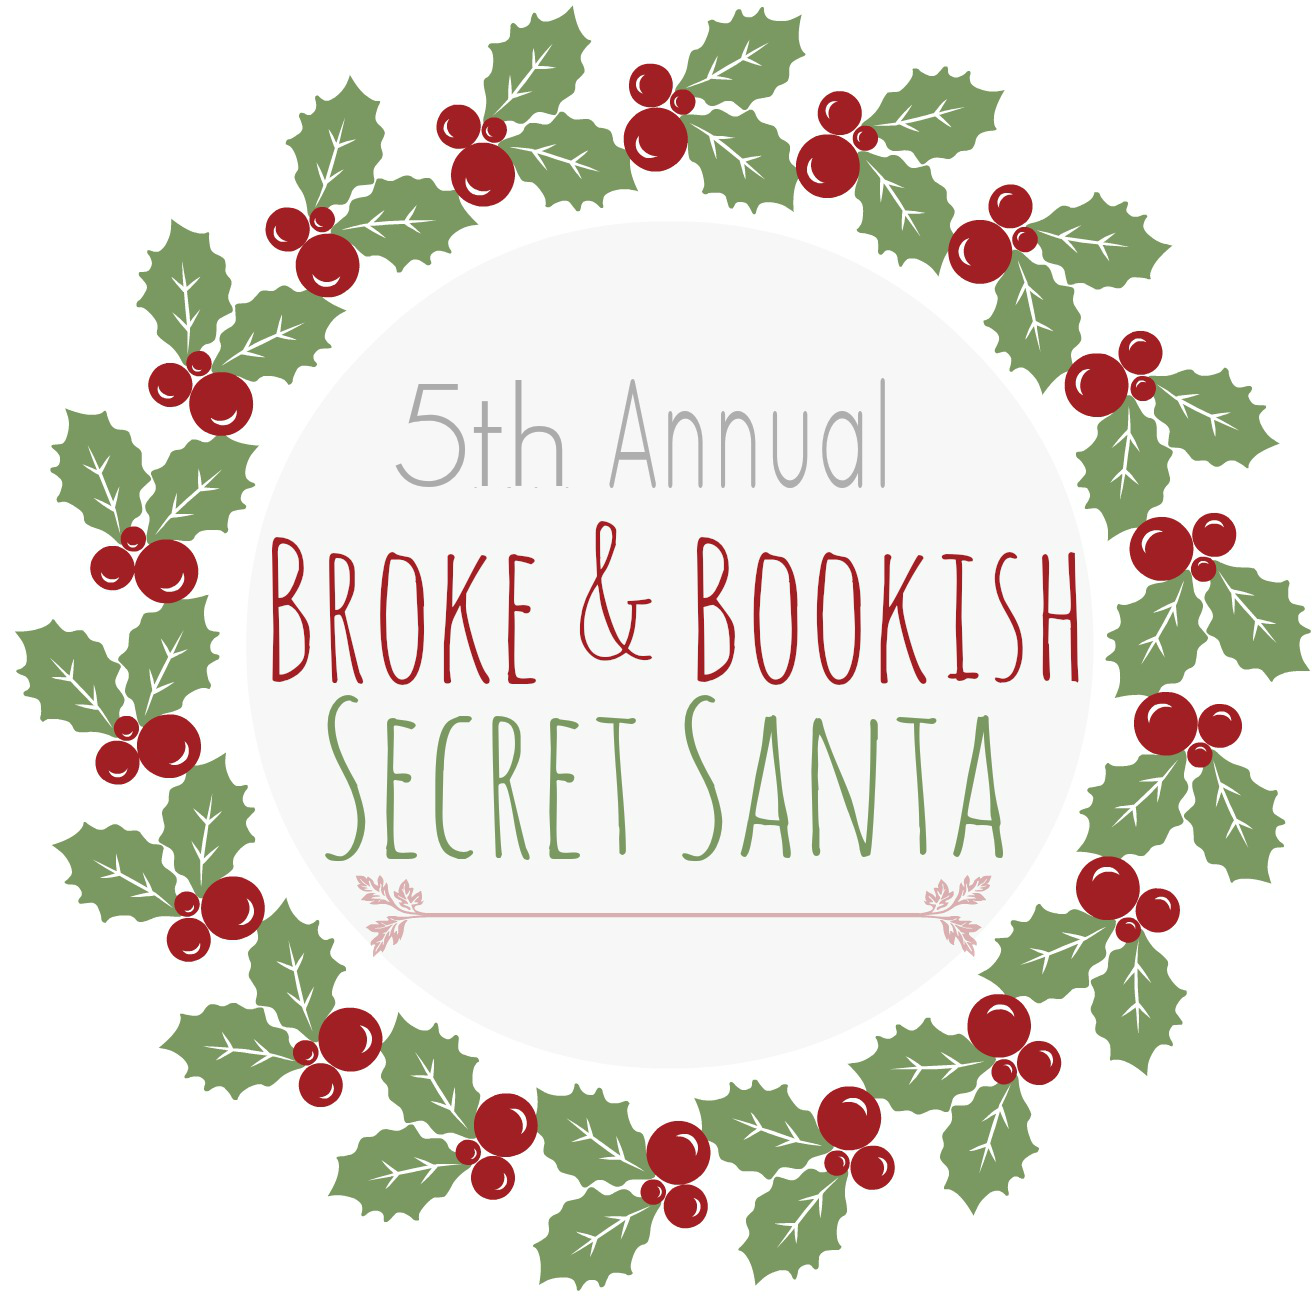 5Th Annual Broke & Bookish Secret Santa Book Swap